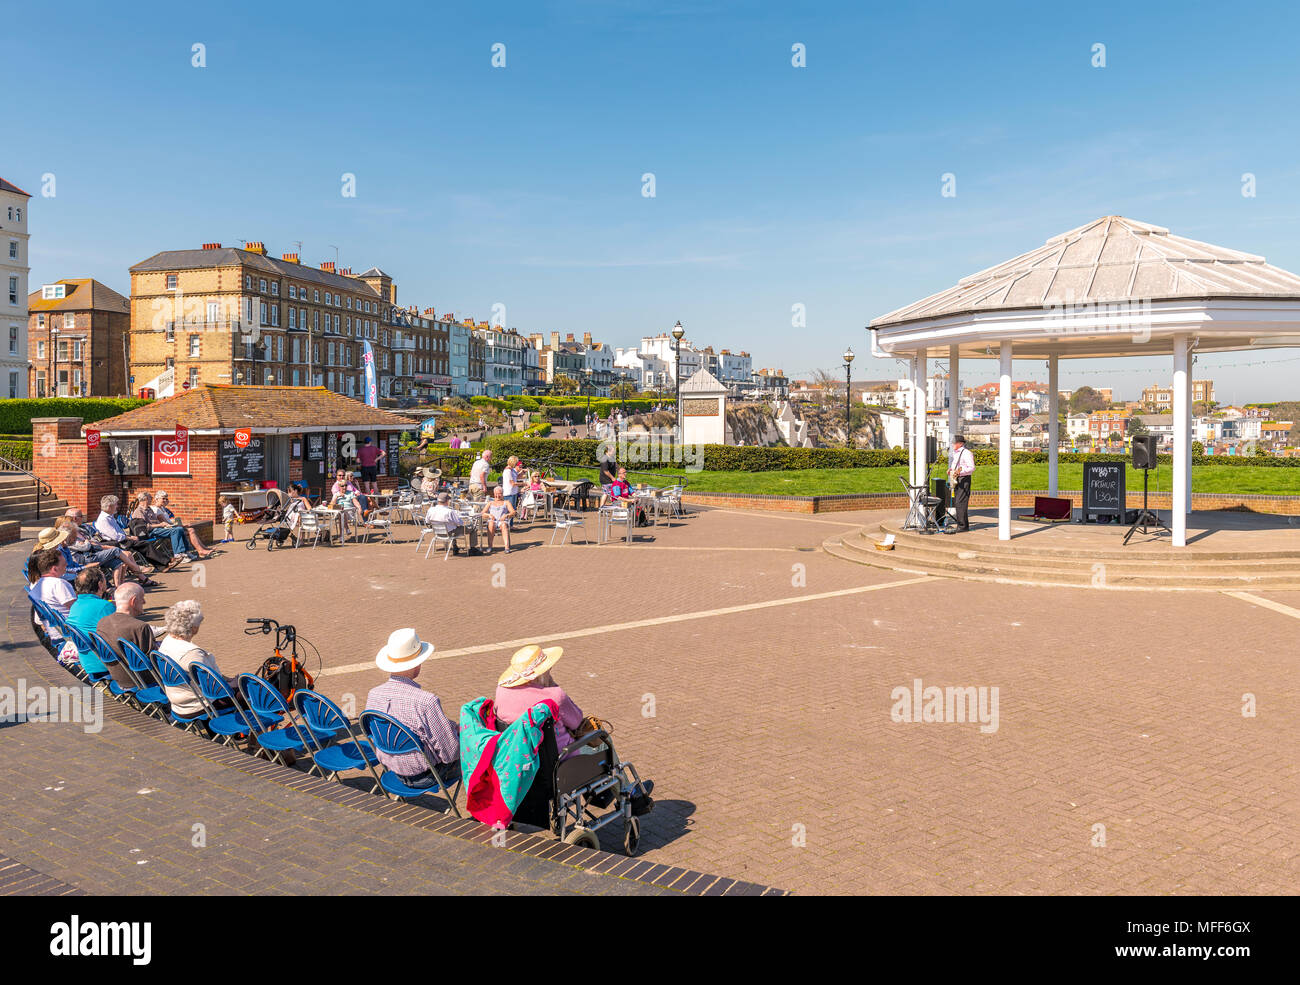 An entertainer called Arthur singing to an audience at the bandstand. Viking bay Broadstairs, Kent - Stock Image